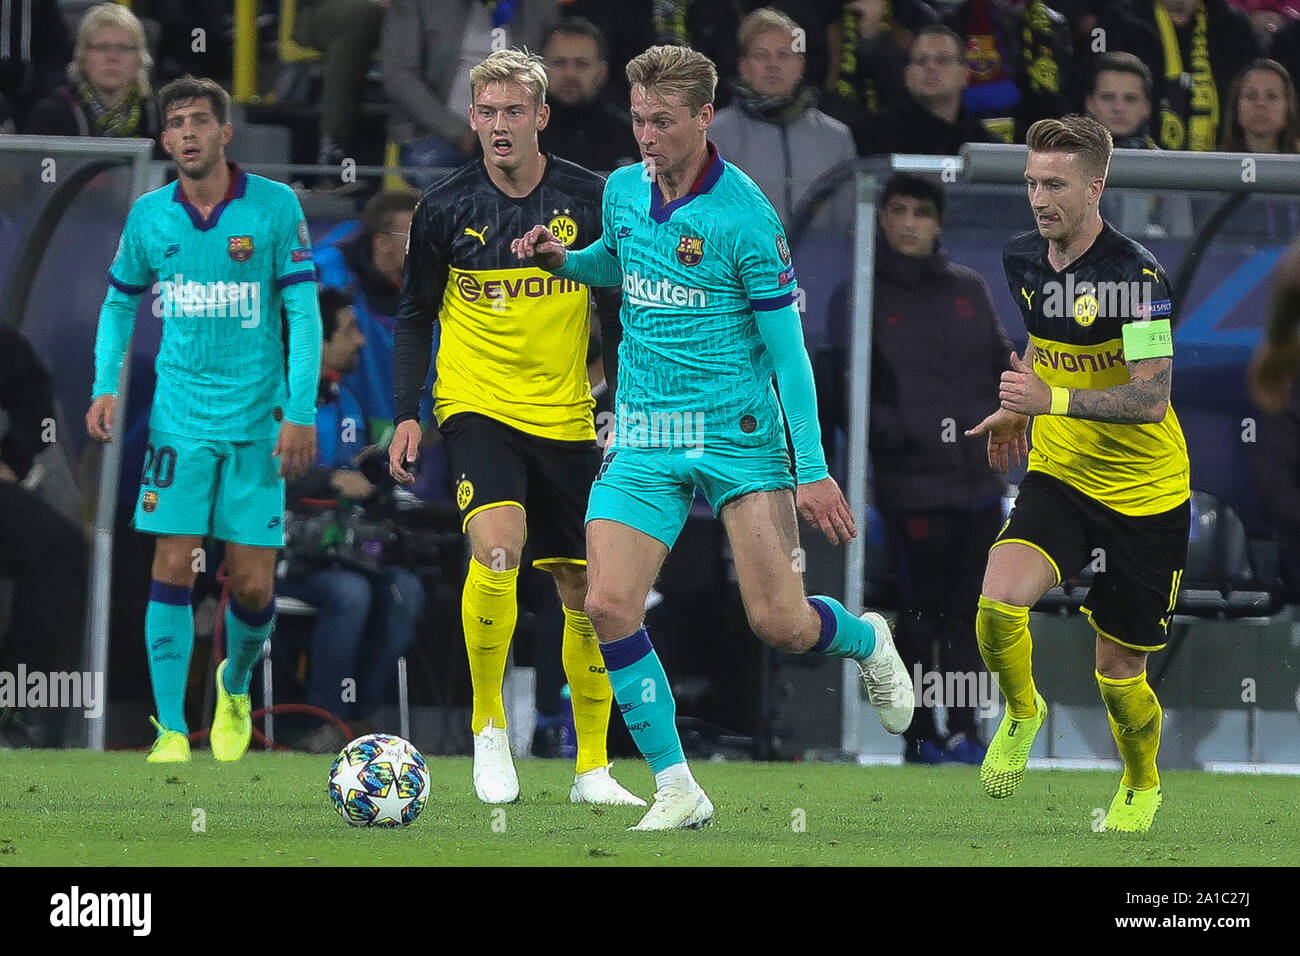 Marco Reus , Julian Brandt  in Borussia Dortmund and Frenkie De Jong in FC Barcelone during the UEFA Champions League, Group F football match between Borussia Dortmund and FC Barcelona on September 17, 2019 at BVB Stadion in Dortmund, Germany - Photo Laurent Lairys / MAXPPP Stock Photo